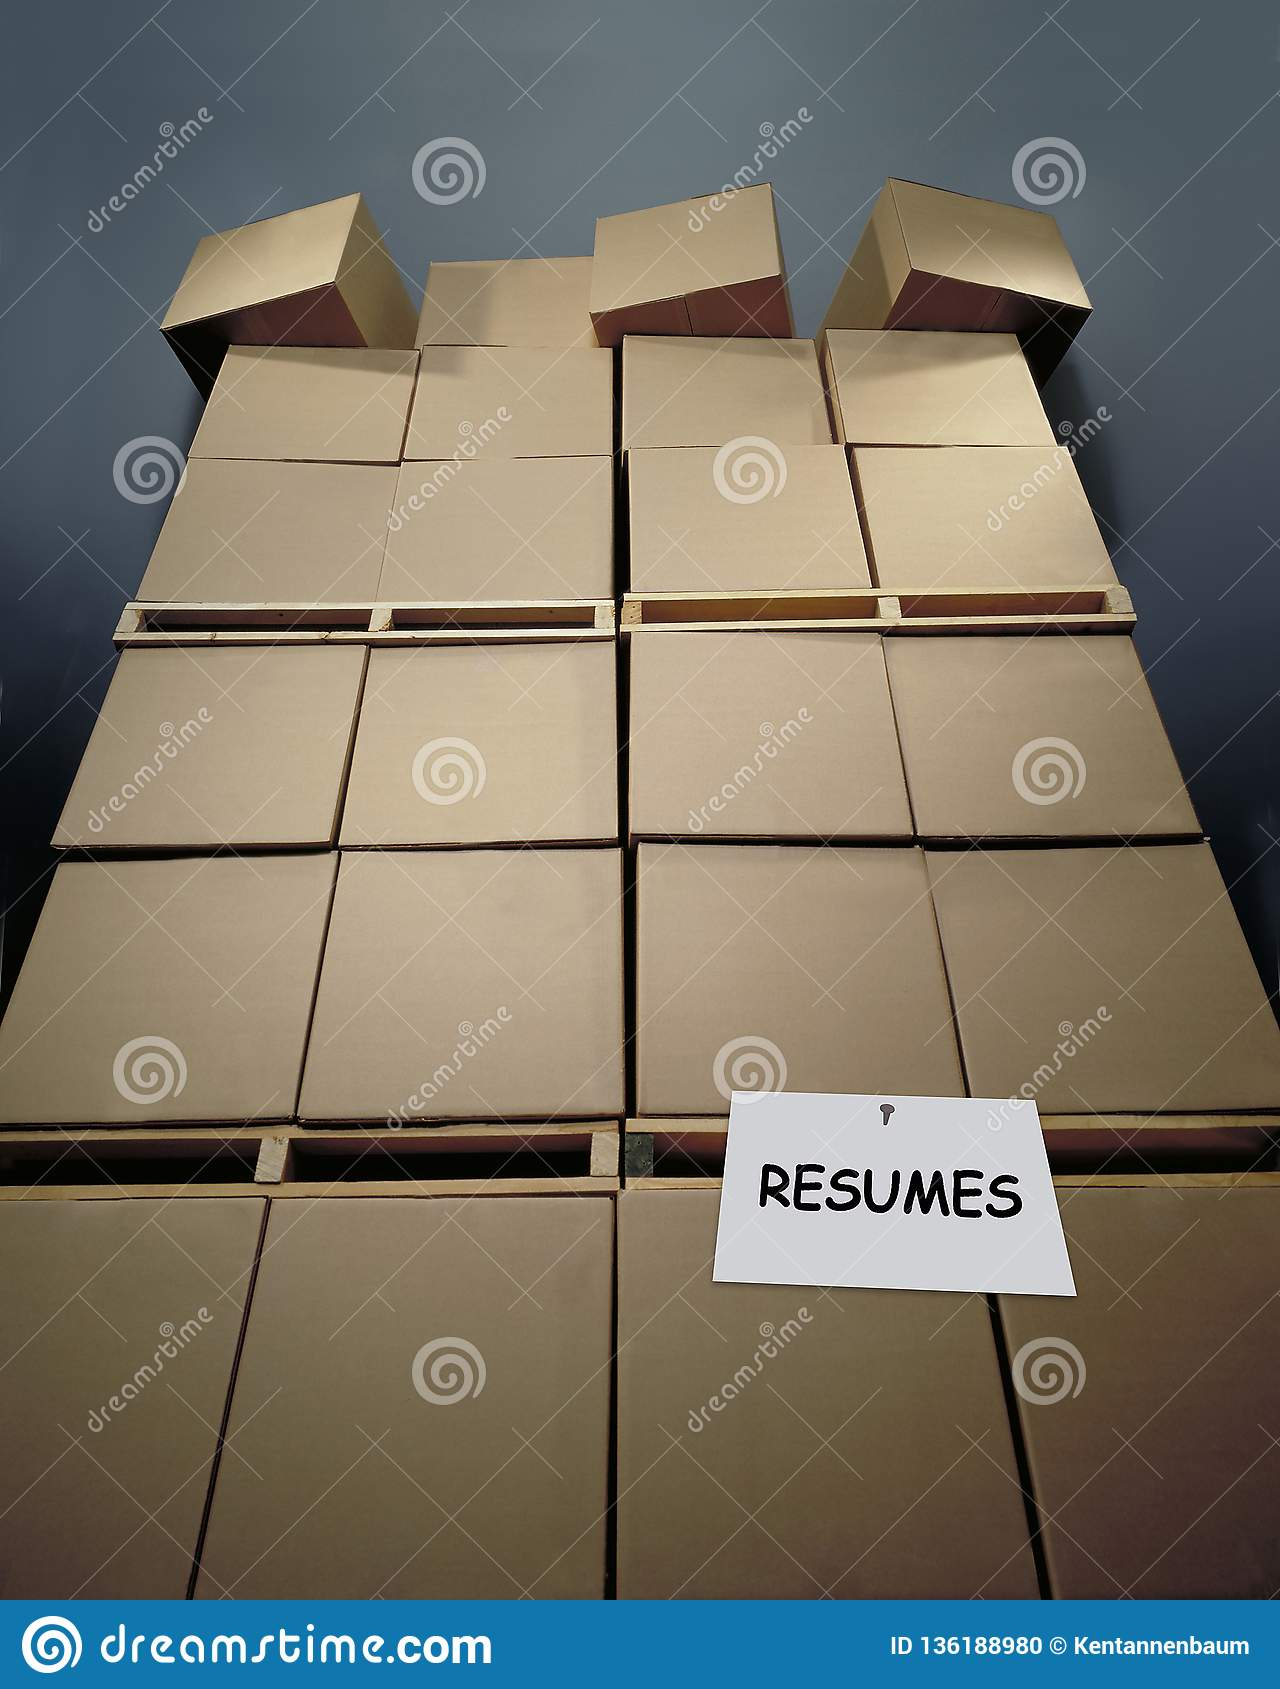 Stacked cartons of resumes